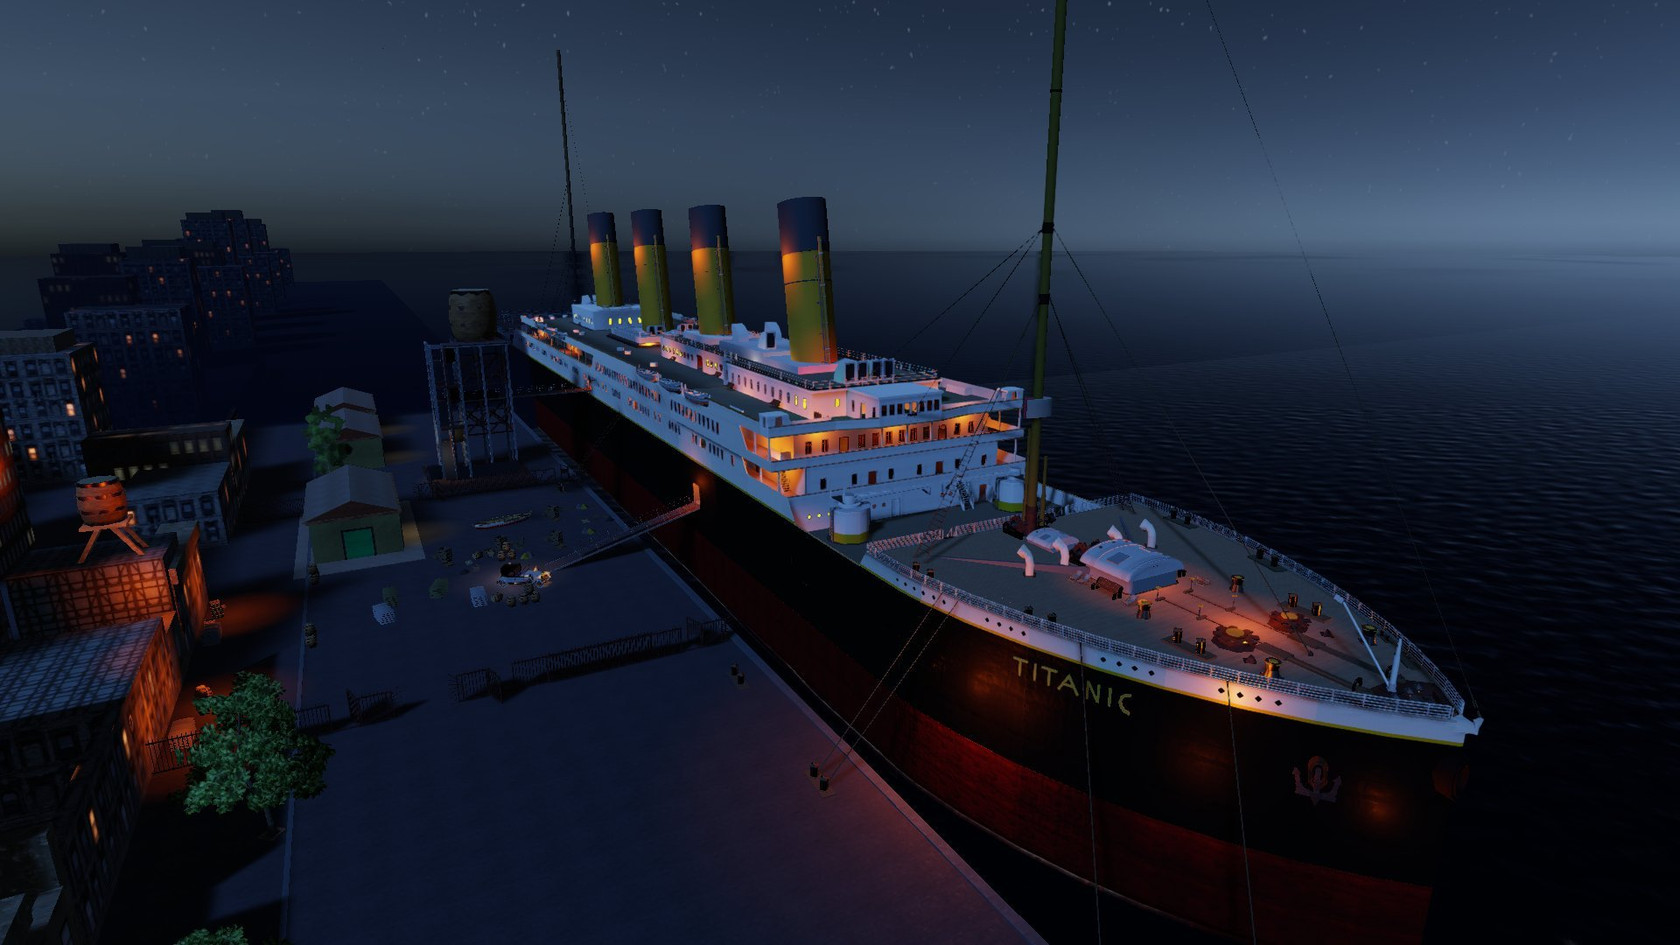 Titanic by Pagos